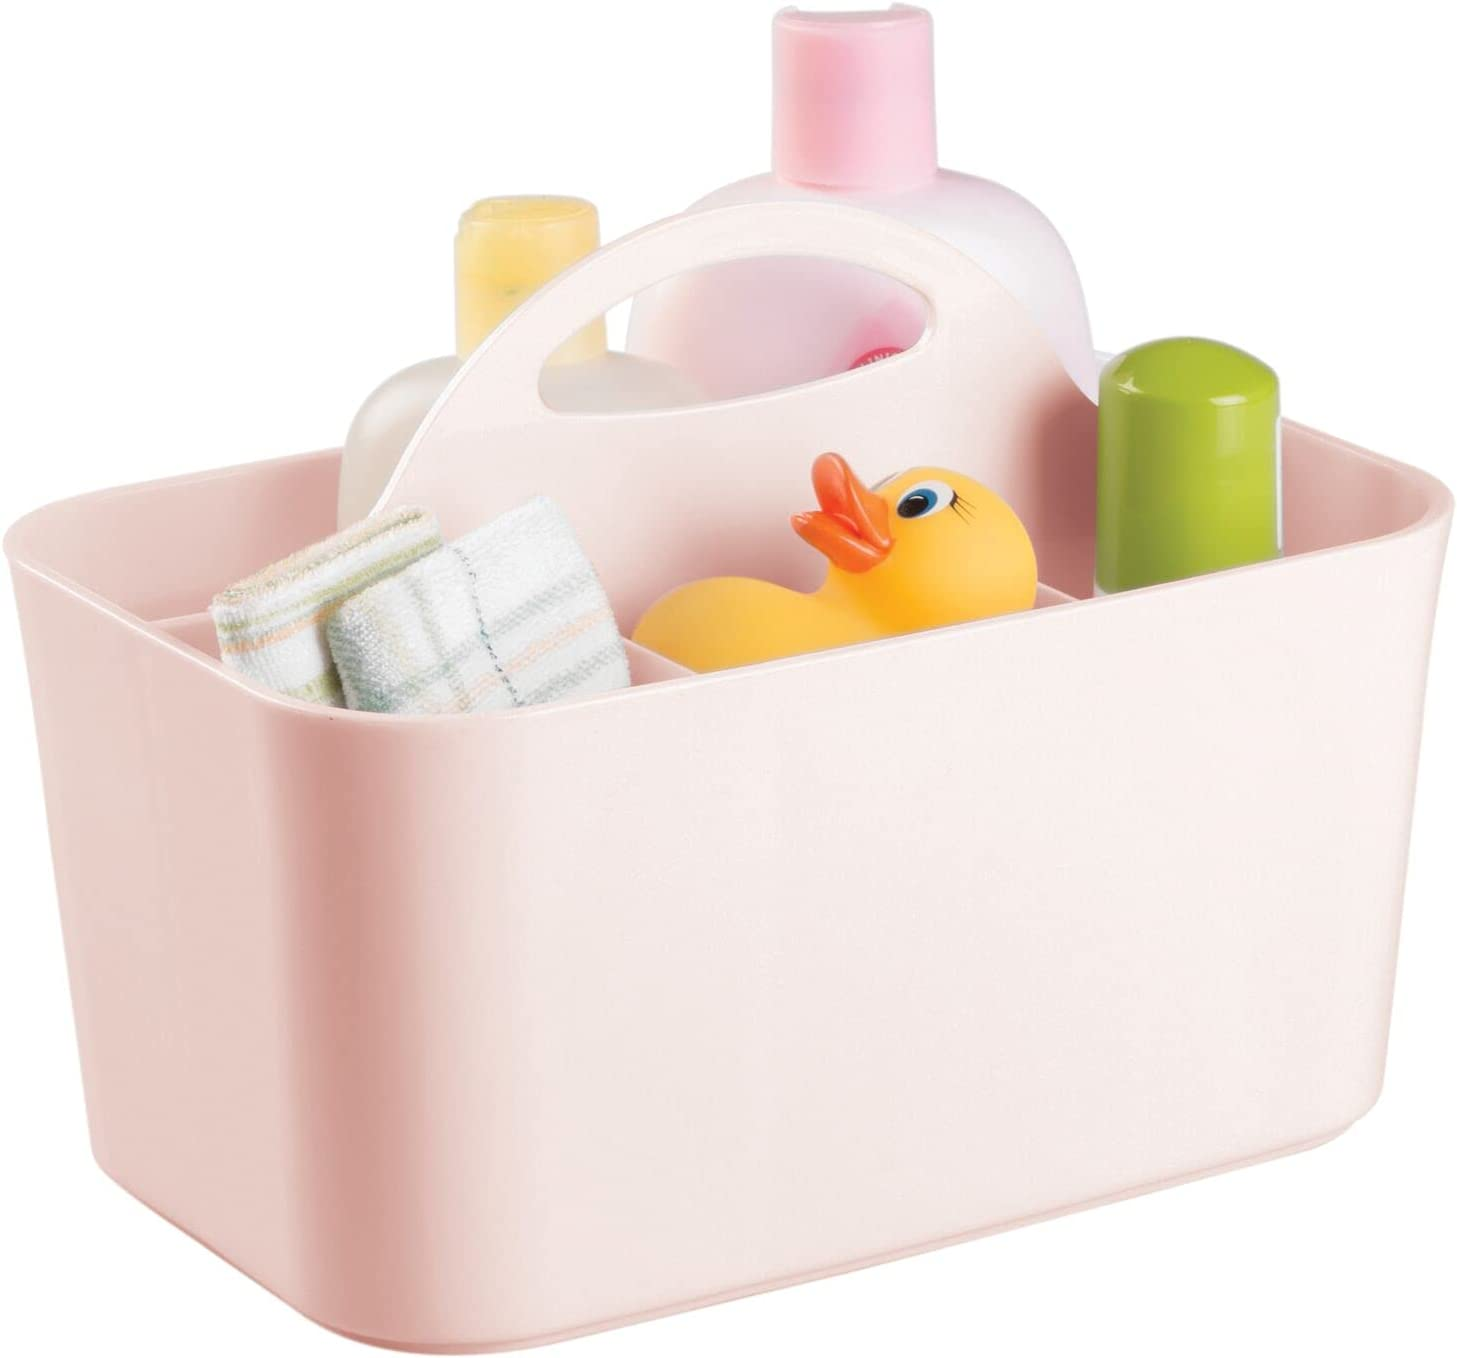 mDesign Plastic Nursery Storage Excellence Caddy with Divided Max 68% OFF Bin Tote Han